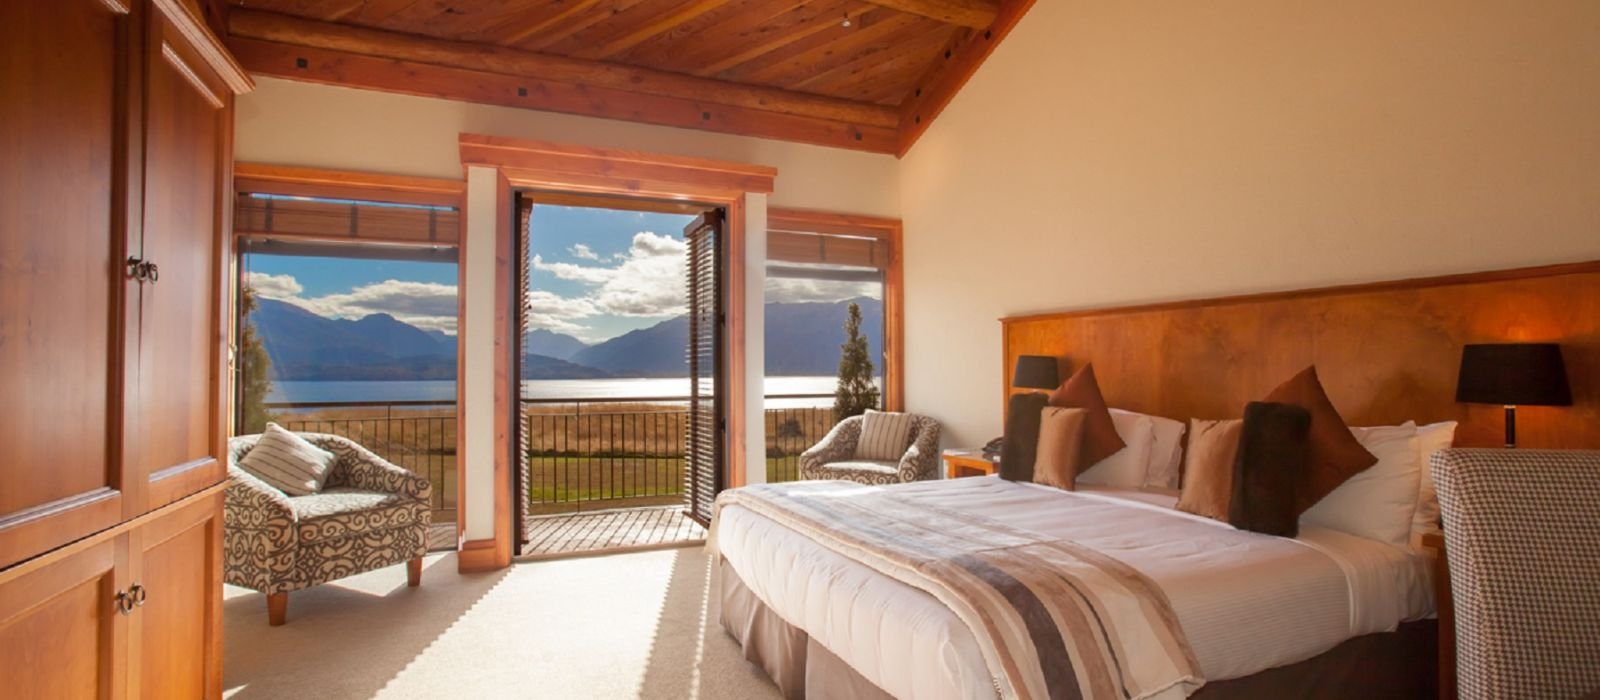 Hotel Fiordland Lodge New Zealand